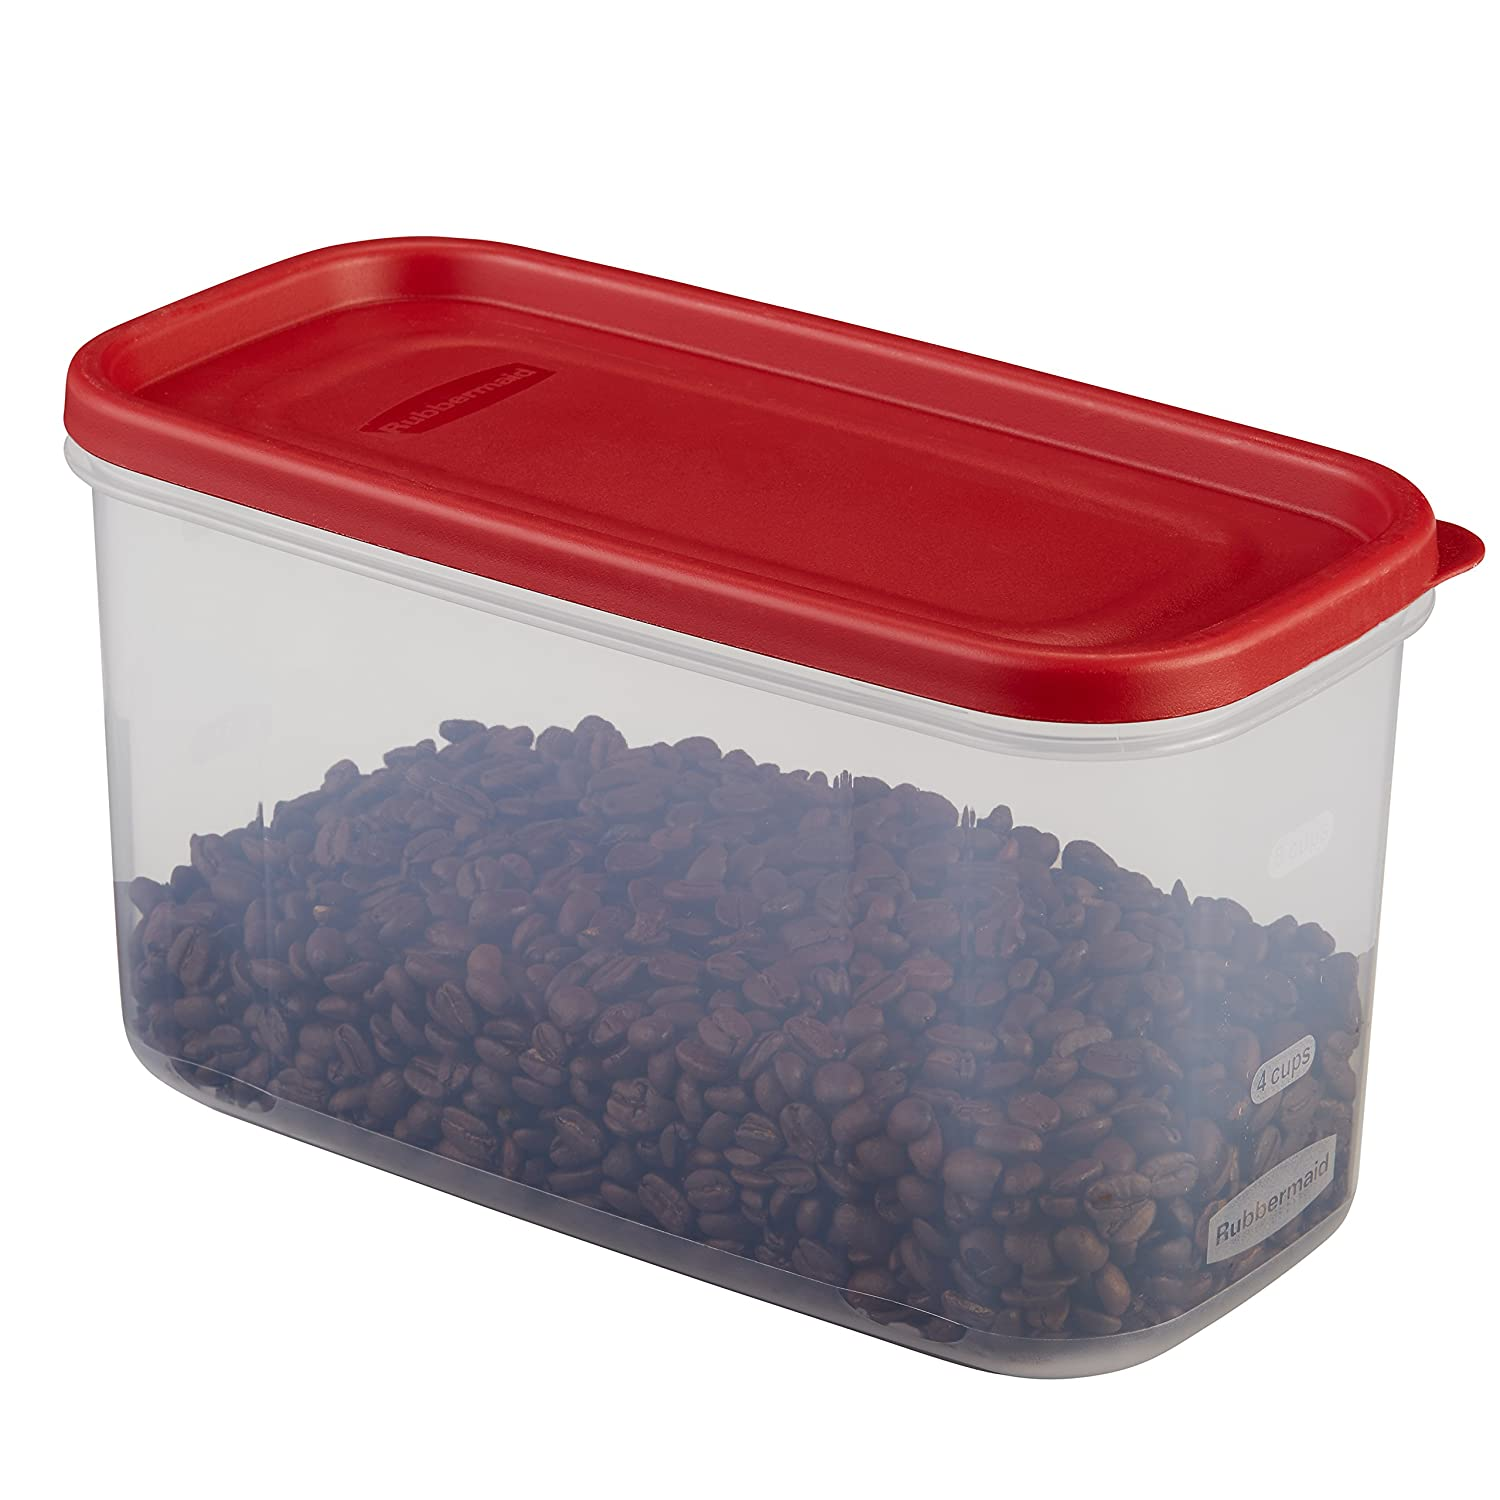 Rubbermaid Modular Food Storage Container, 10 Cup, Racer Red 1776471